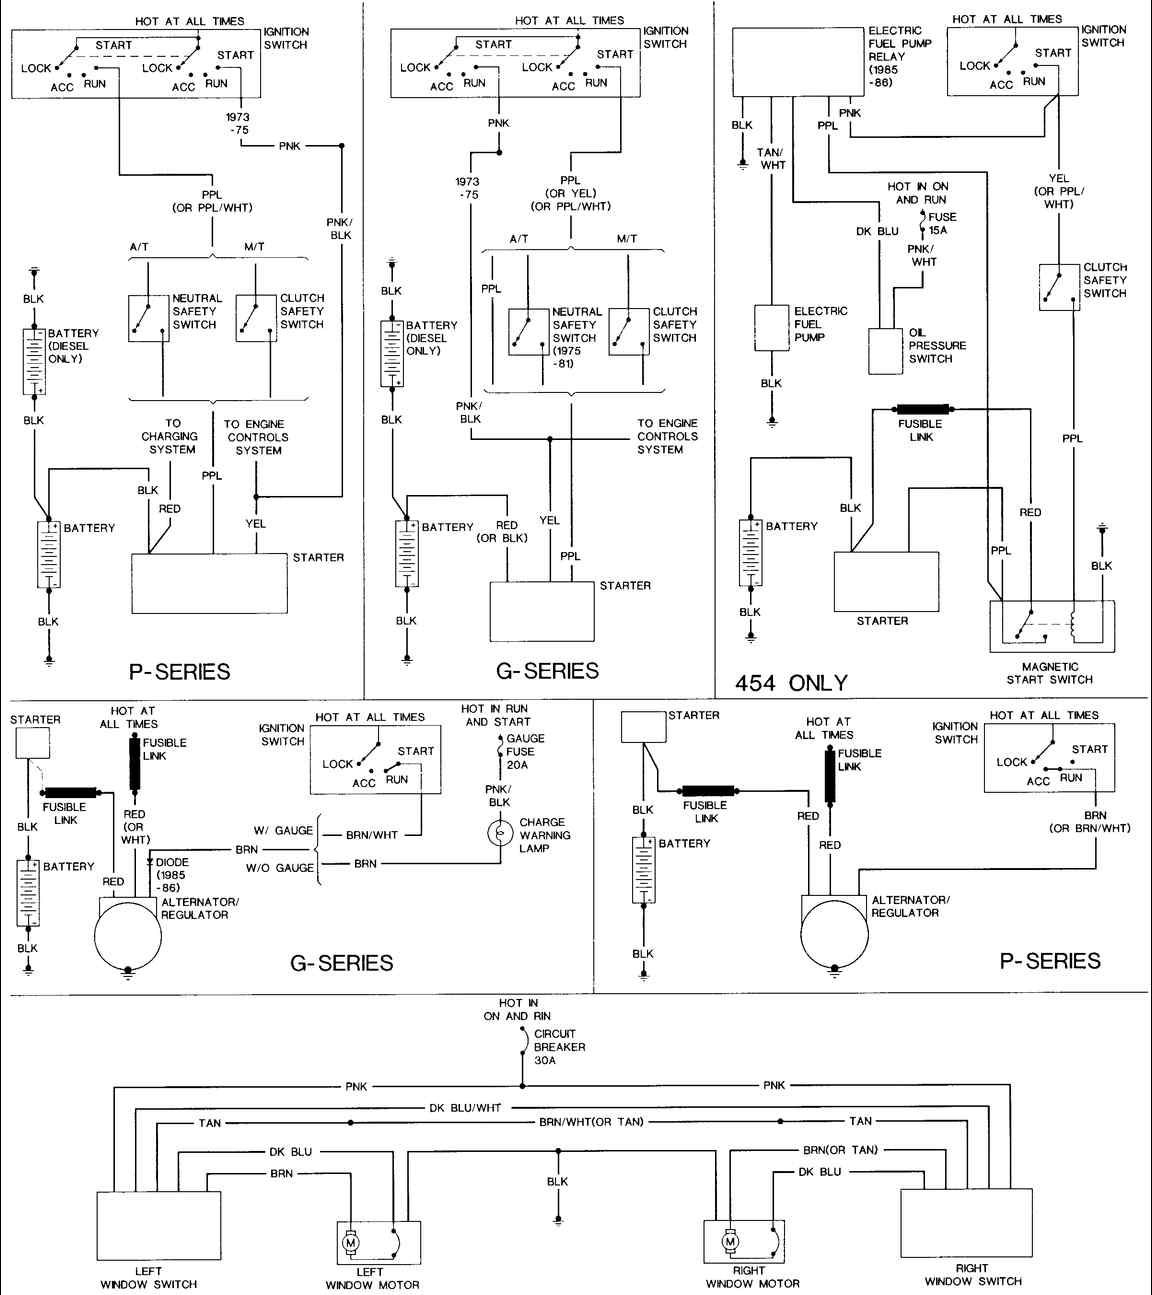 medium resolution of 1980 chevy truck wiring diagram images gallery